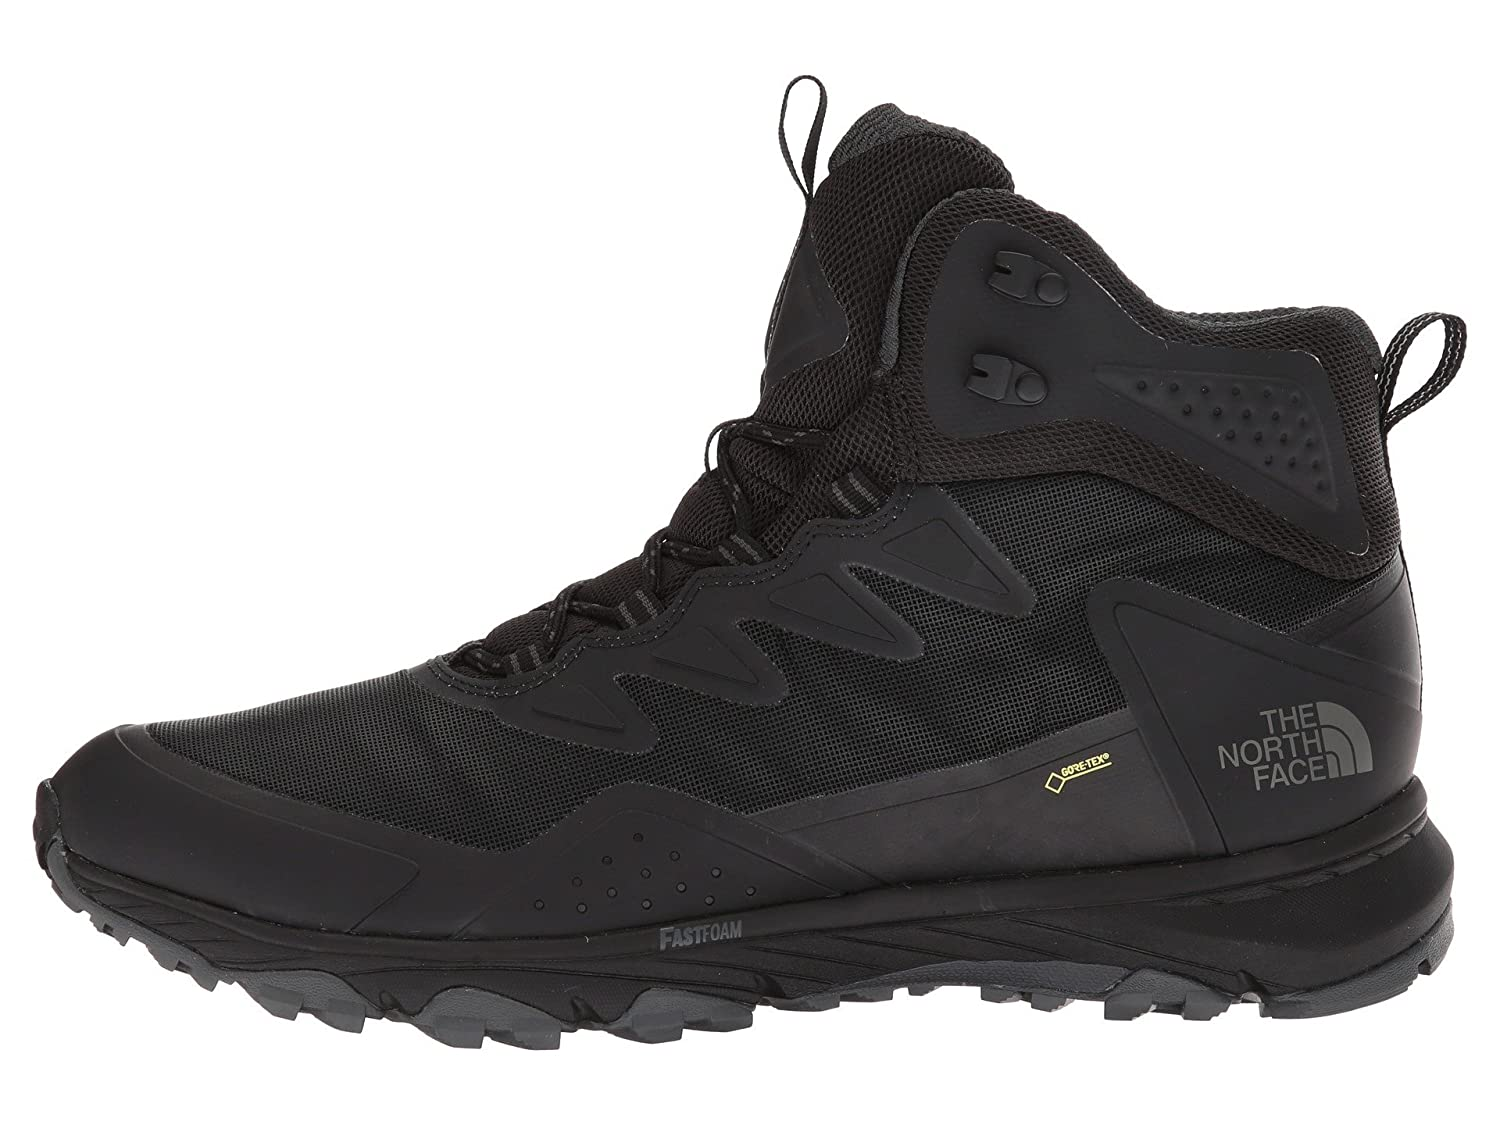 The North Face M Utra FP III MD GTX, Stivali da Escursionismo Alti Uomo, Nero (TNF Black/TNF Black Kx7), 44.5 EU